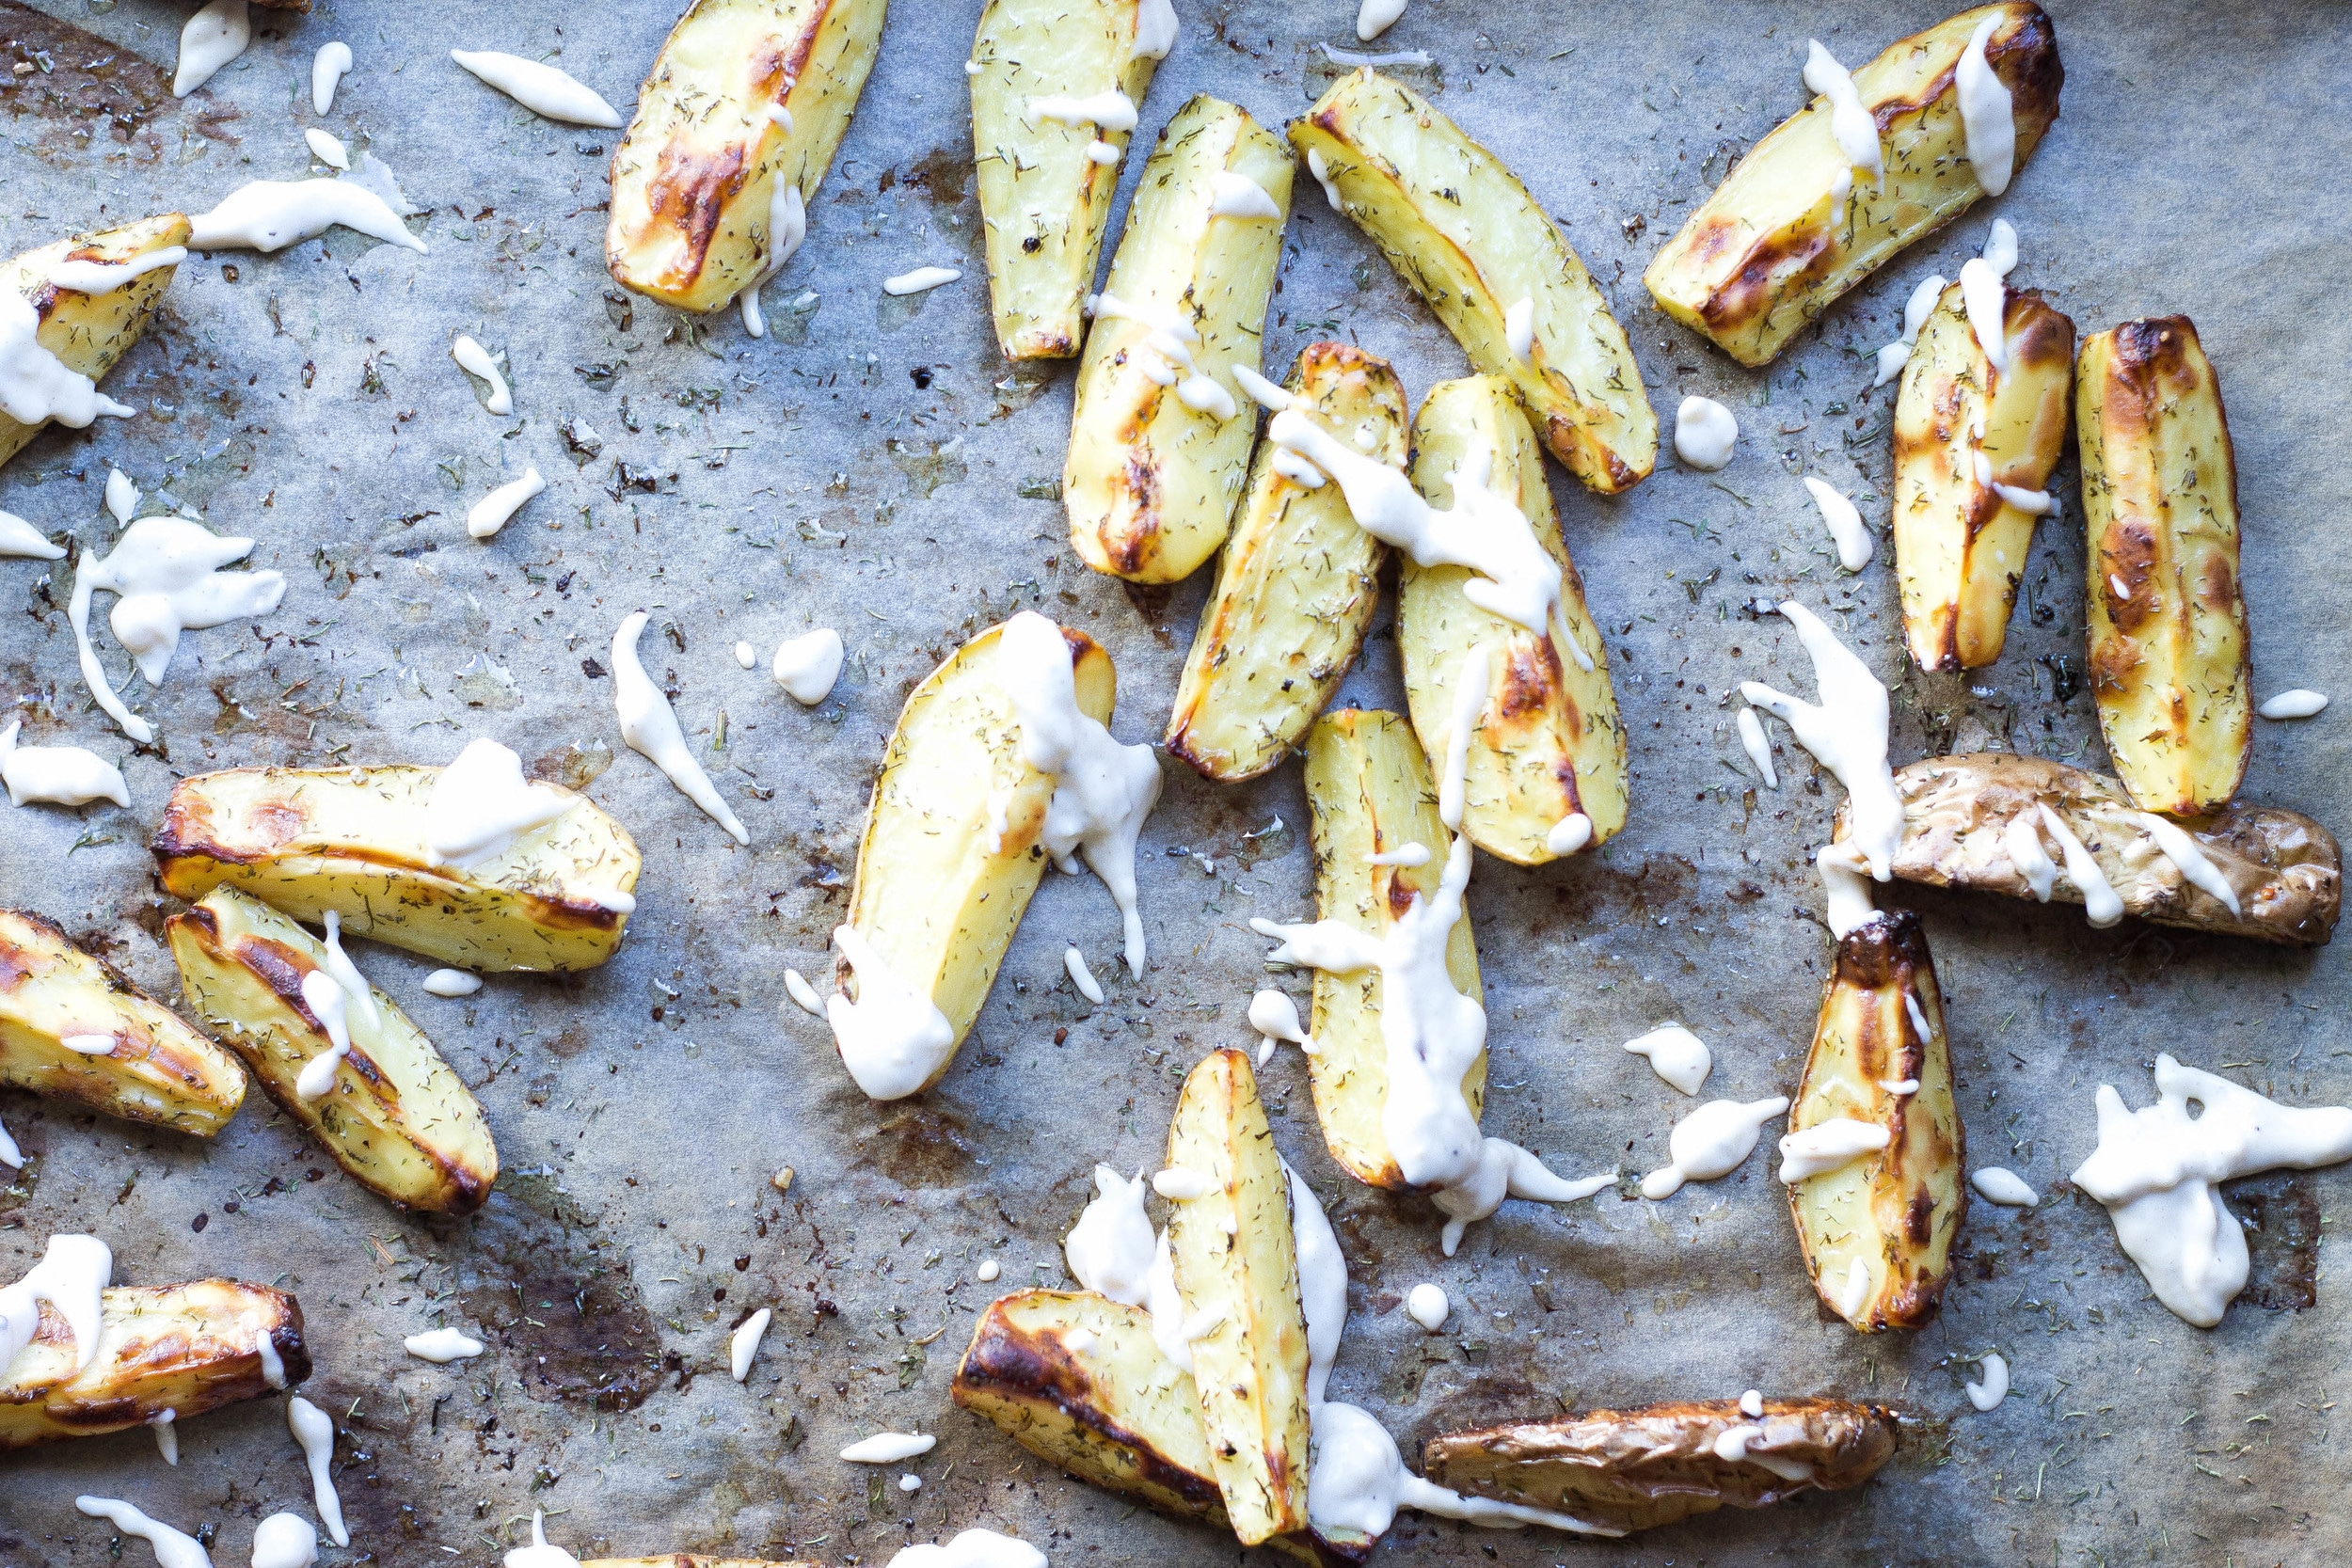 Dill Roasted Fingerlings with Garlic Aioli (Vegan, Dairy-free, Grain-free)